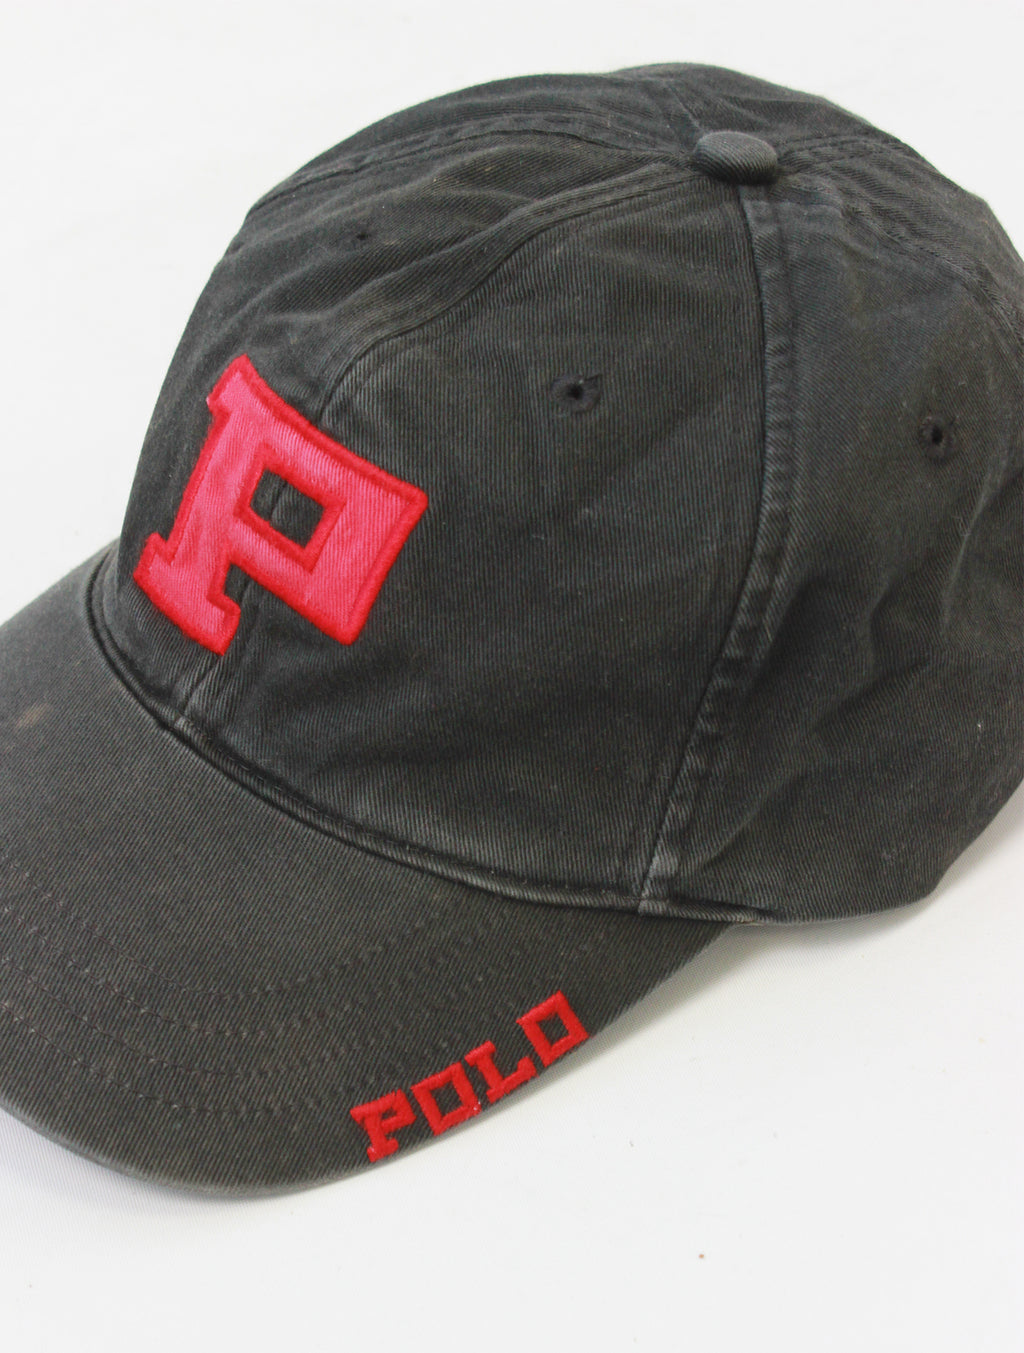 Ralph Lauren Polo Sport Hat